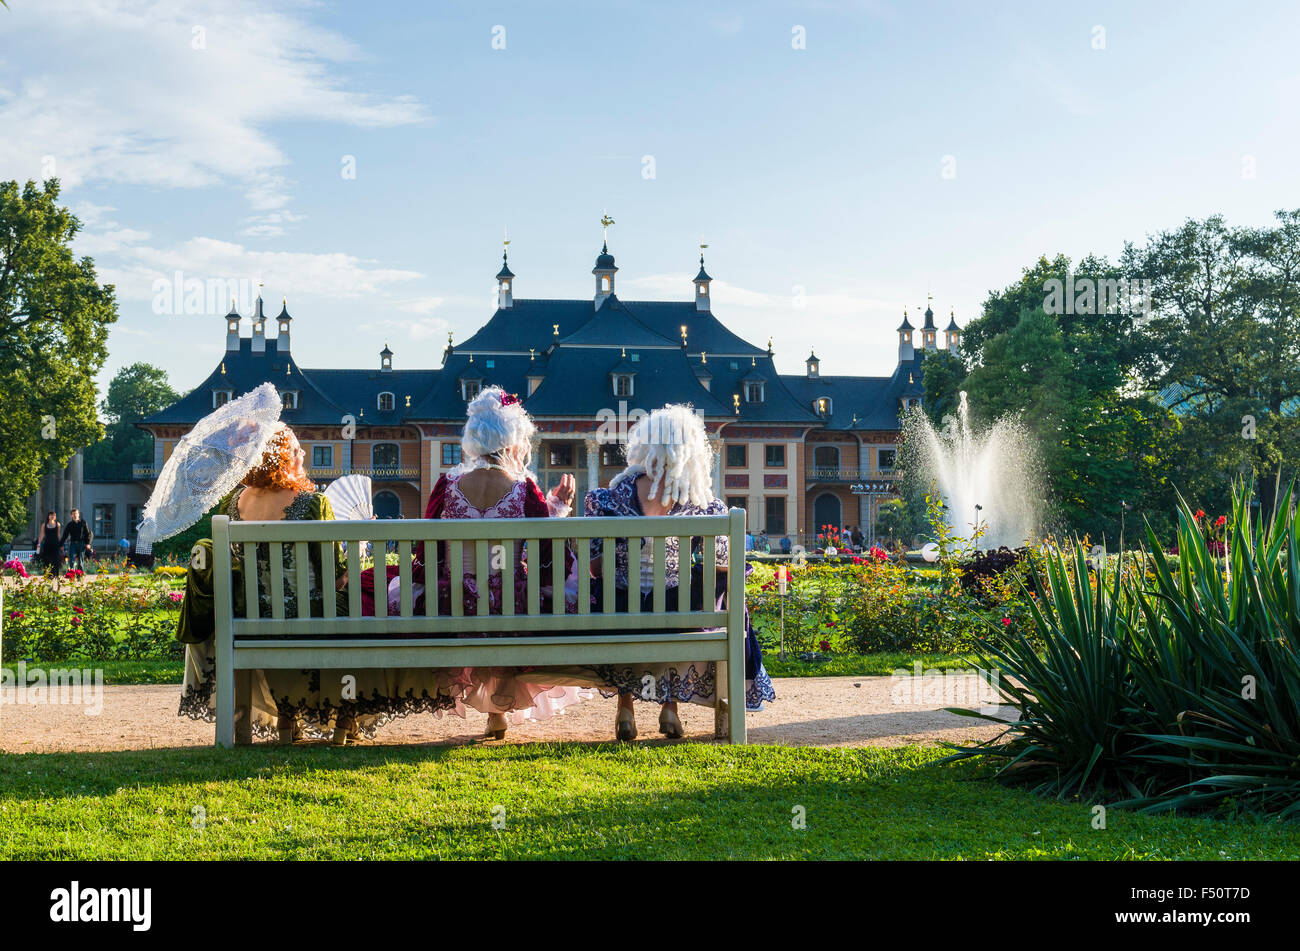 Baroque style dressed actors at Pillnitz Castle, situated 12 km out of the City at the river Elbe - Stock Image